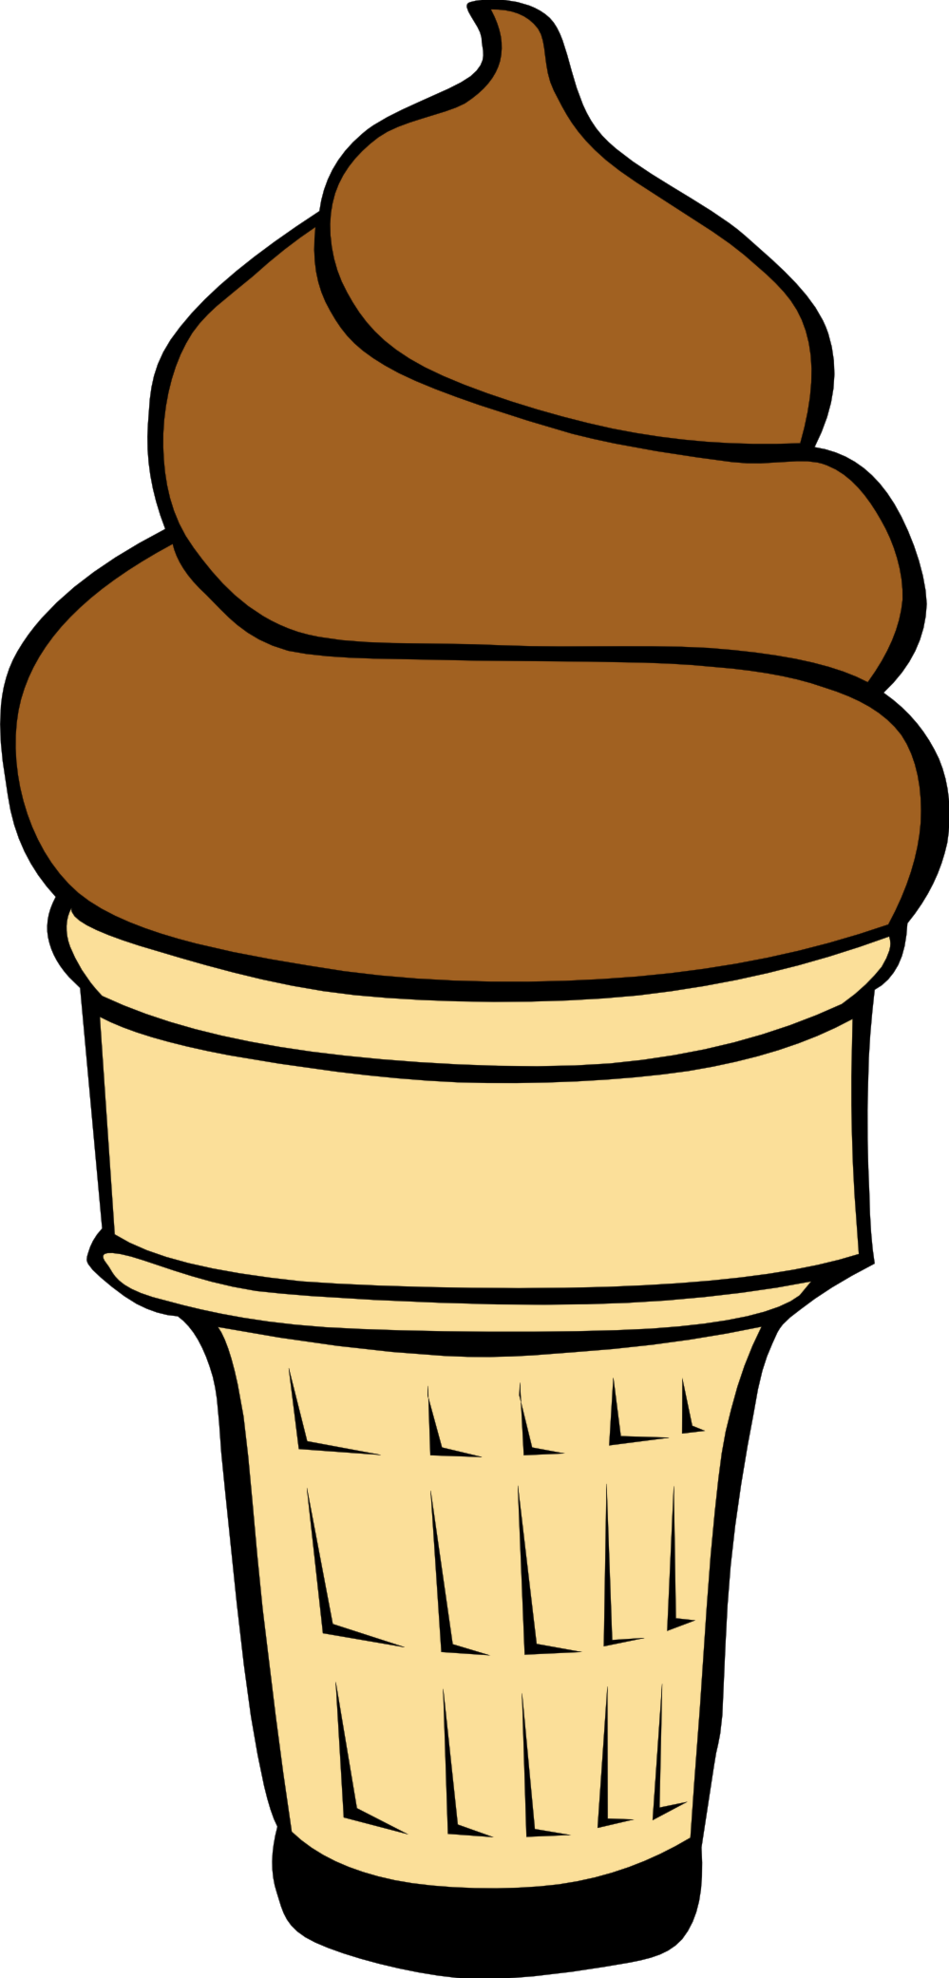 Ice cream cone clip art 2